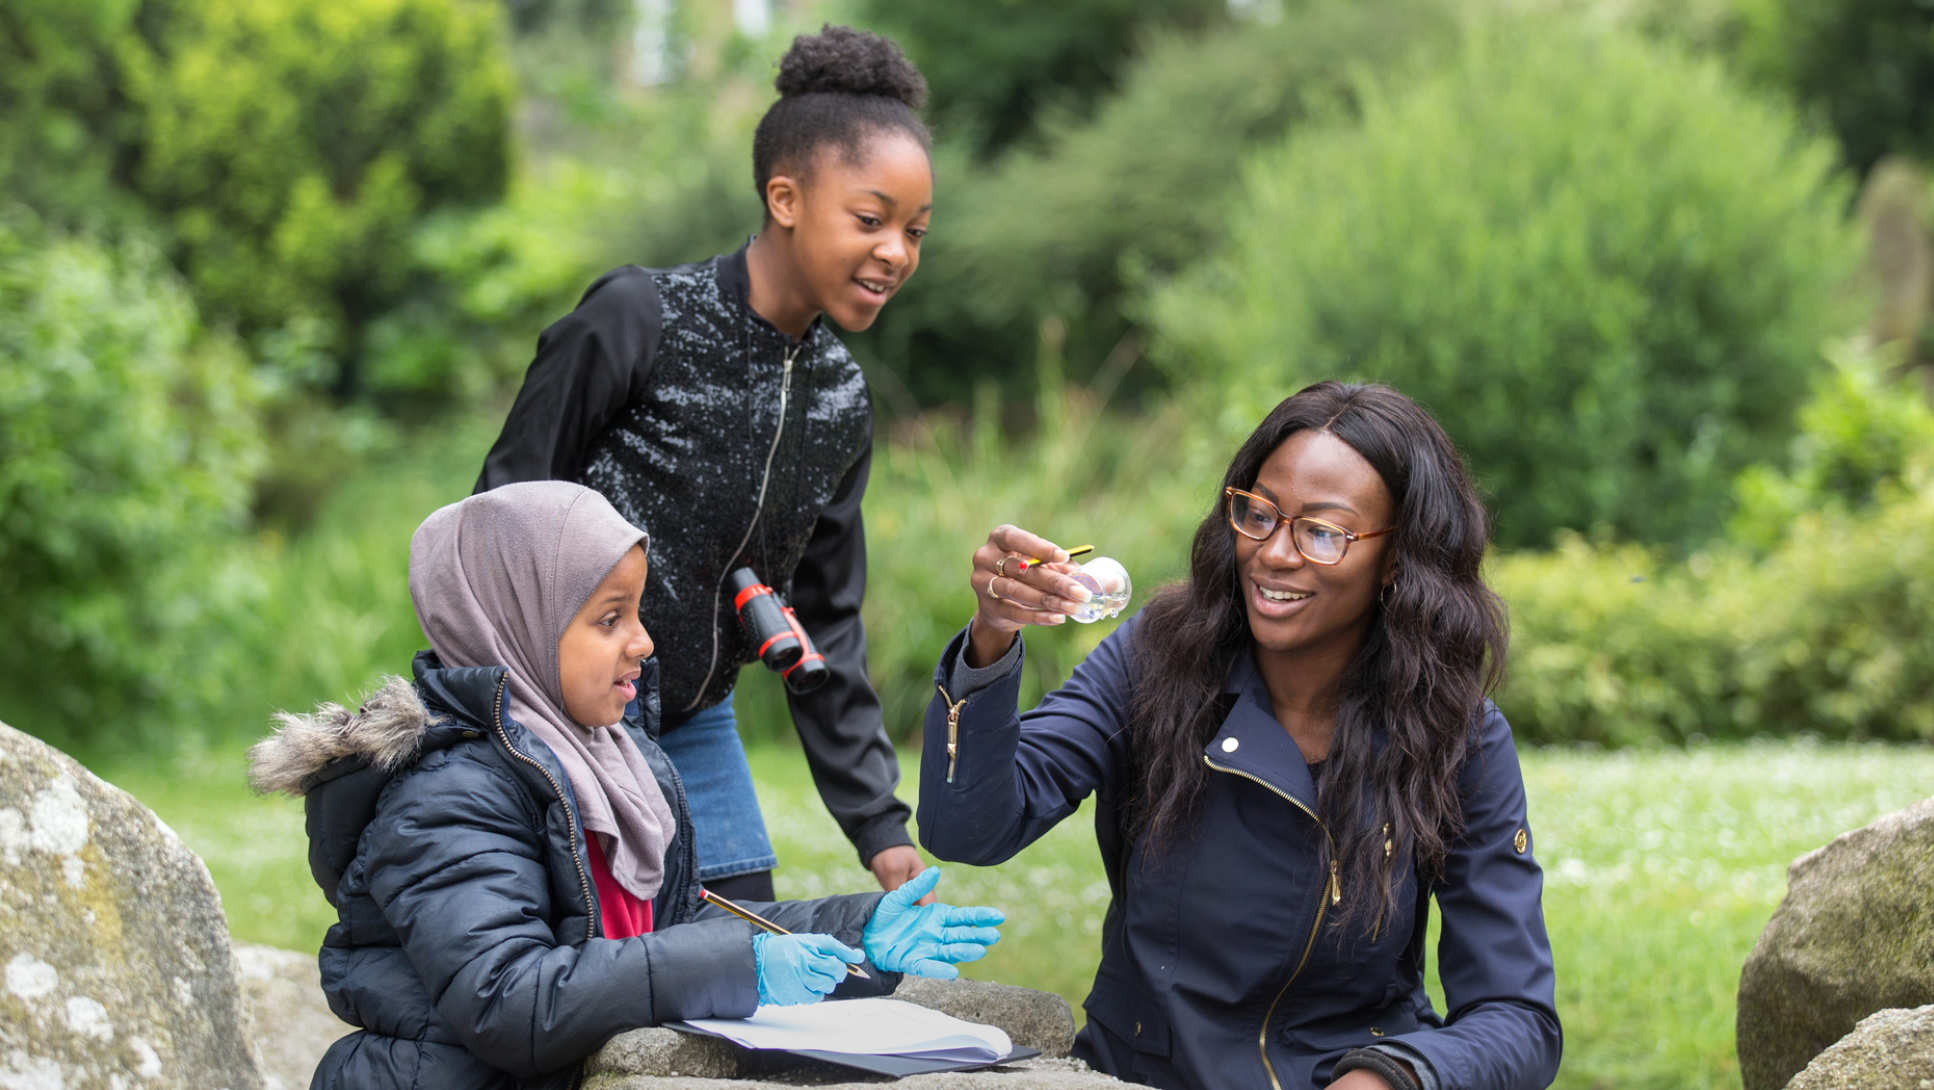 Two children and a woman recording details of the insects they have found in a park.